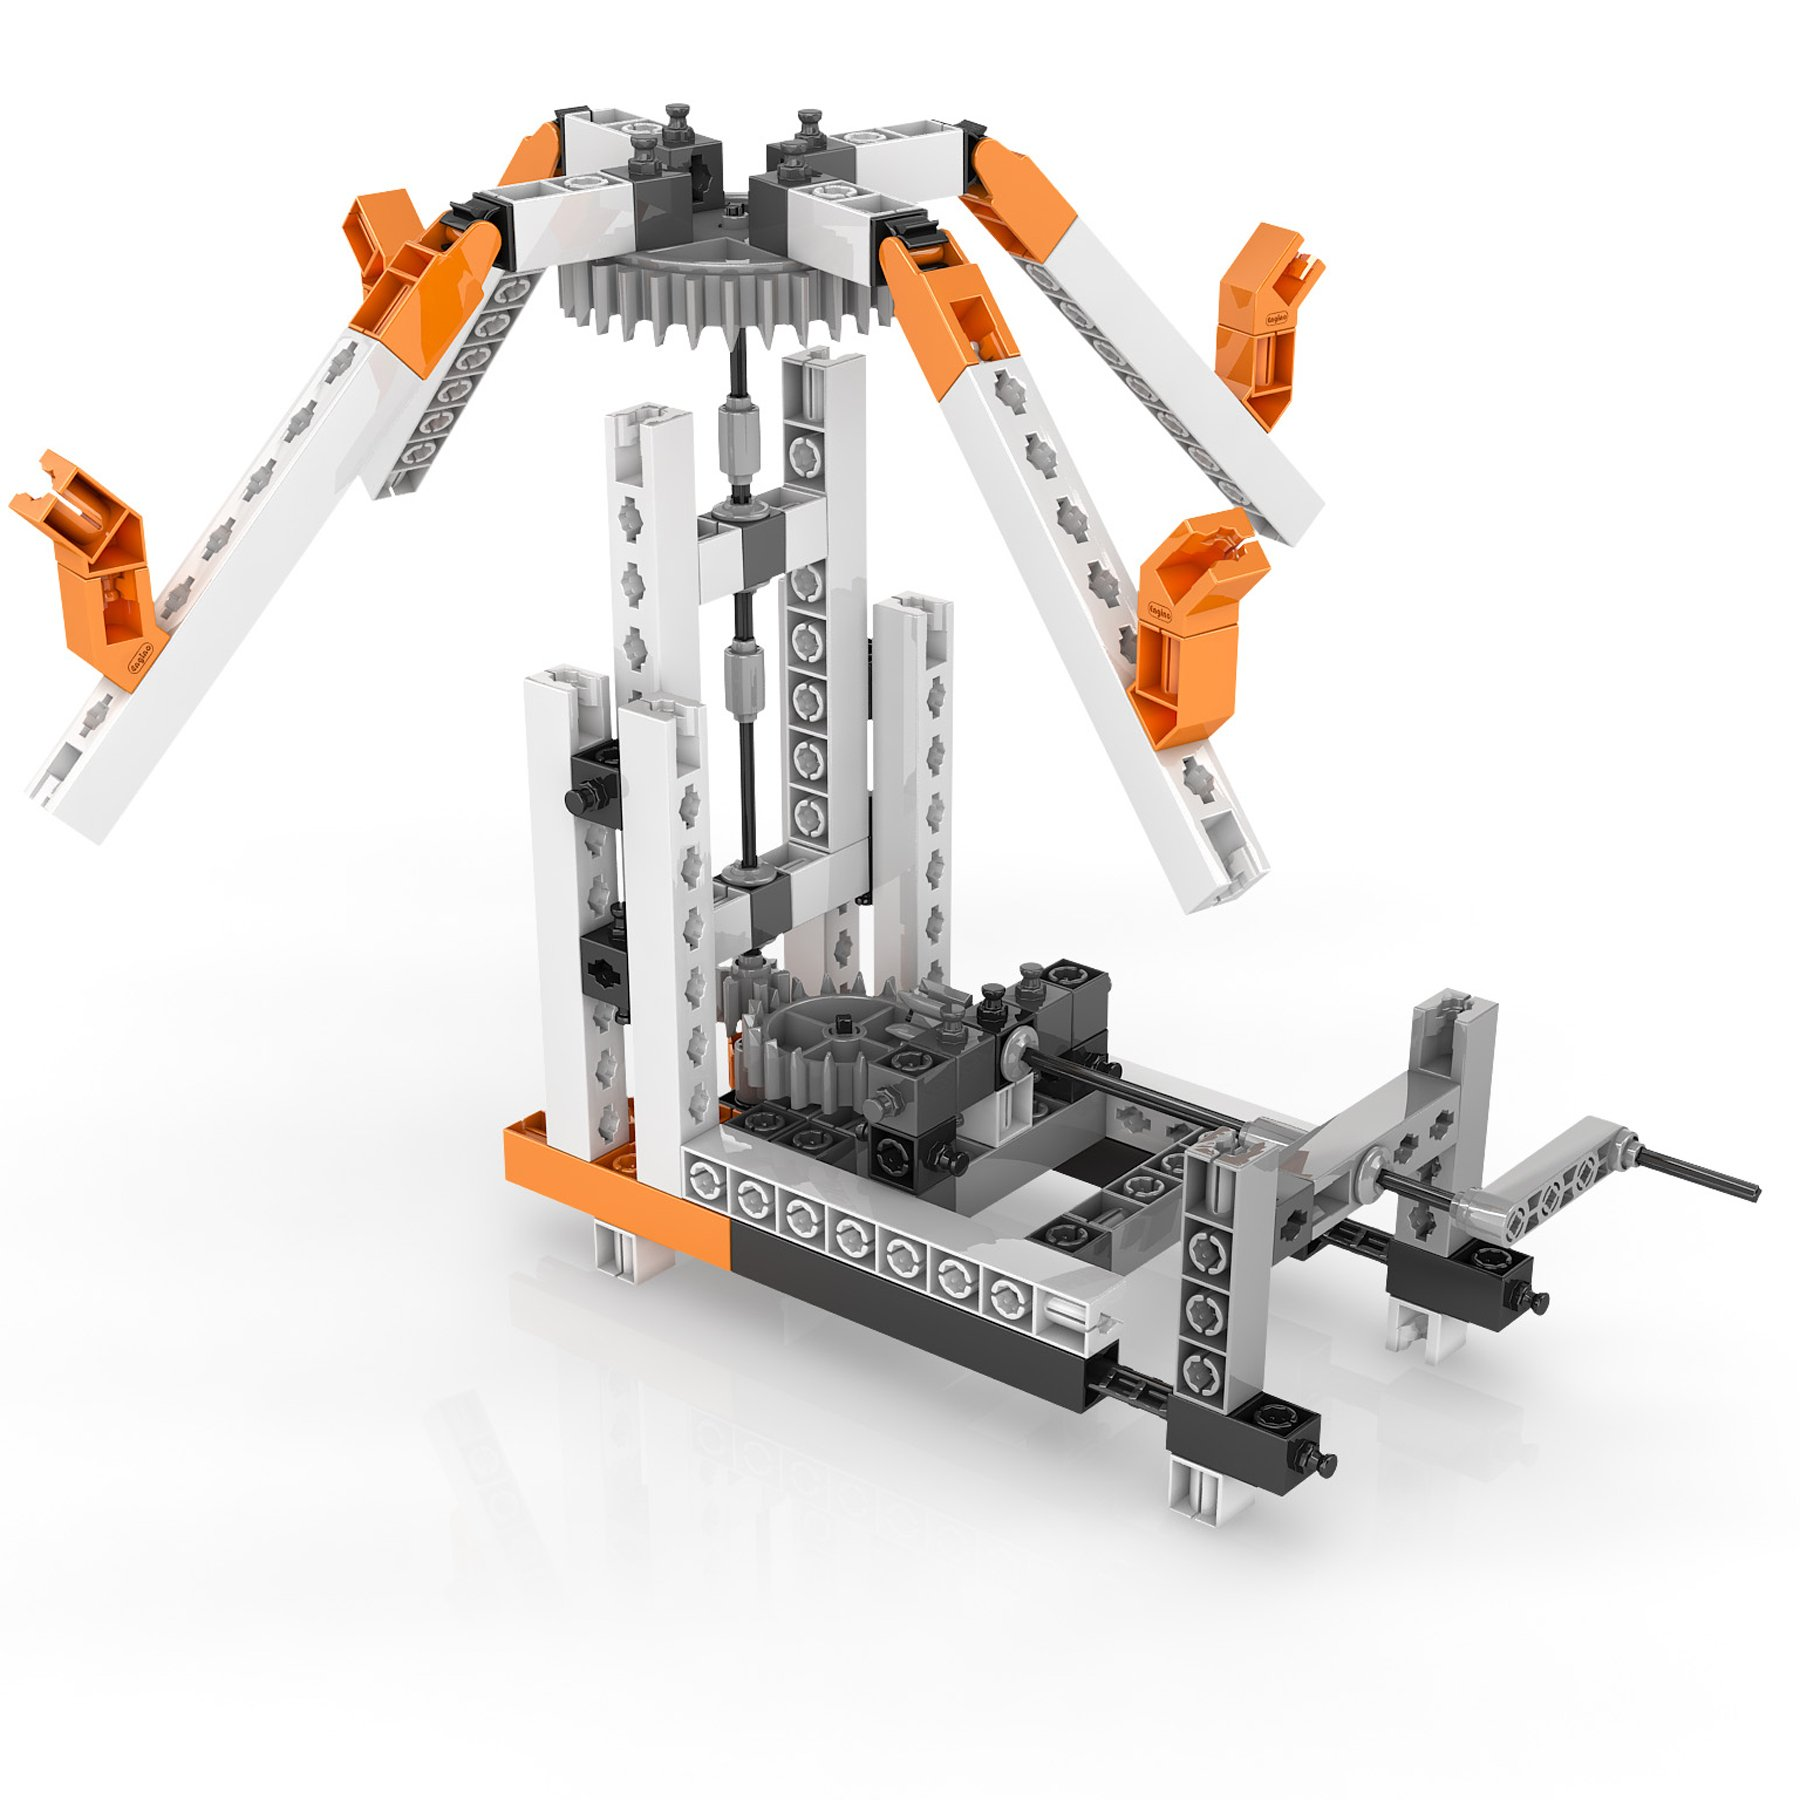 Engino Discovering STEM Simple Machines Mechanisms That Multiply Force Construction Kit by Engino (Image #7)